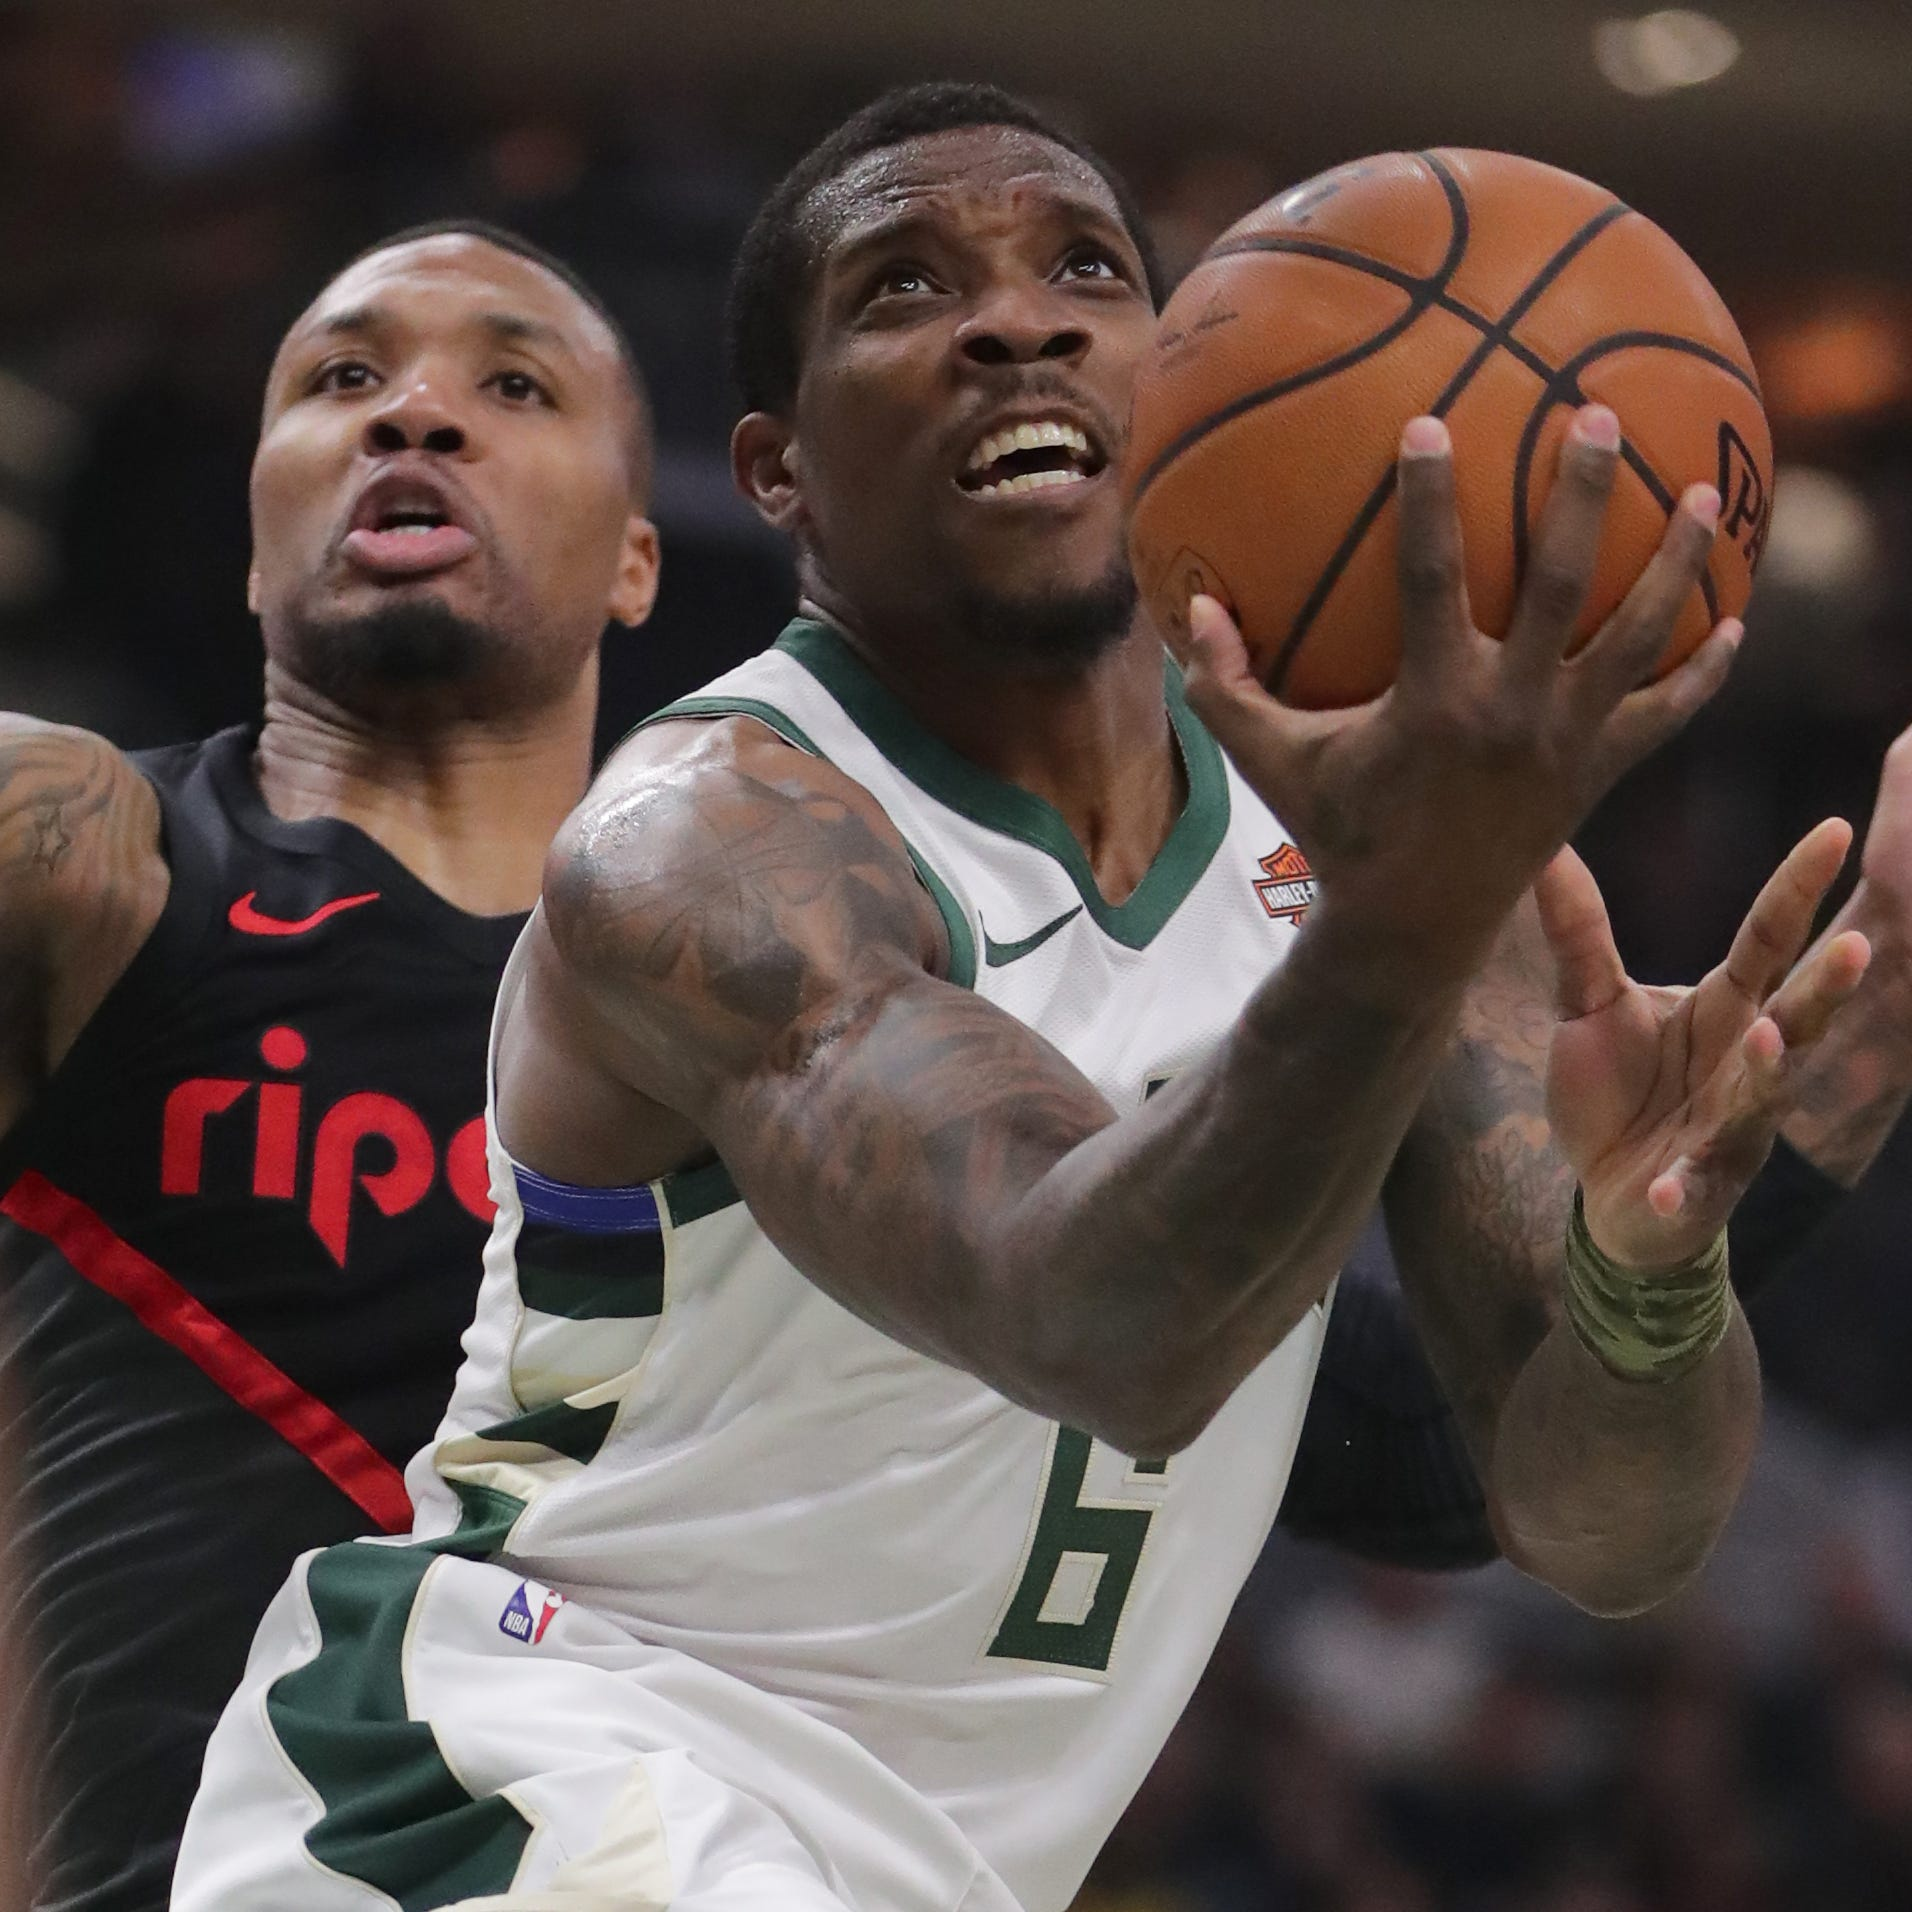 Bucks 143, Trail Blazers 100: Starters get their rest after a thorough stuffing